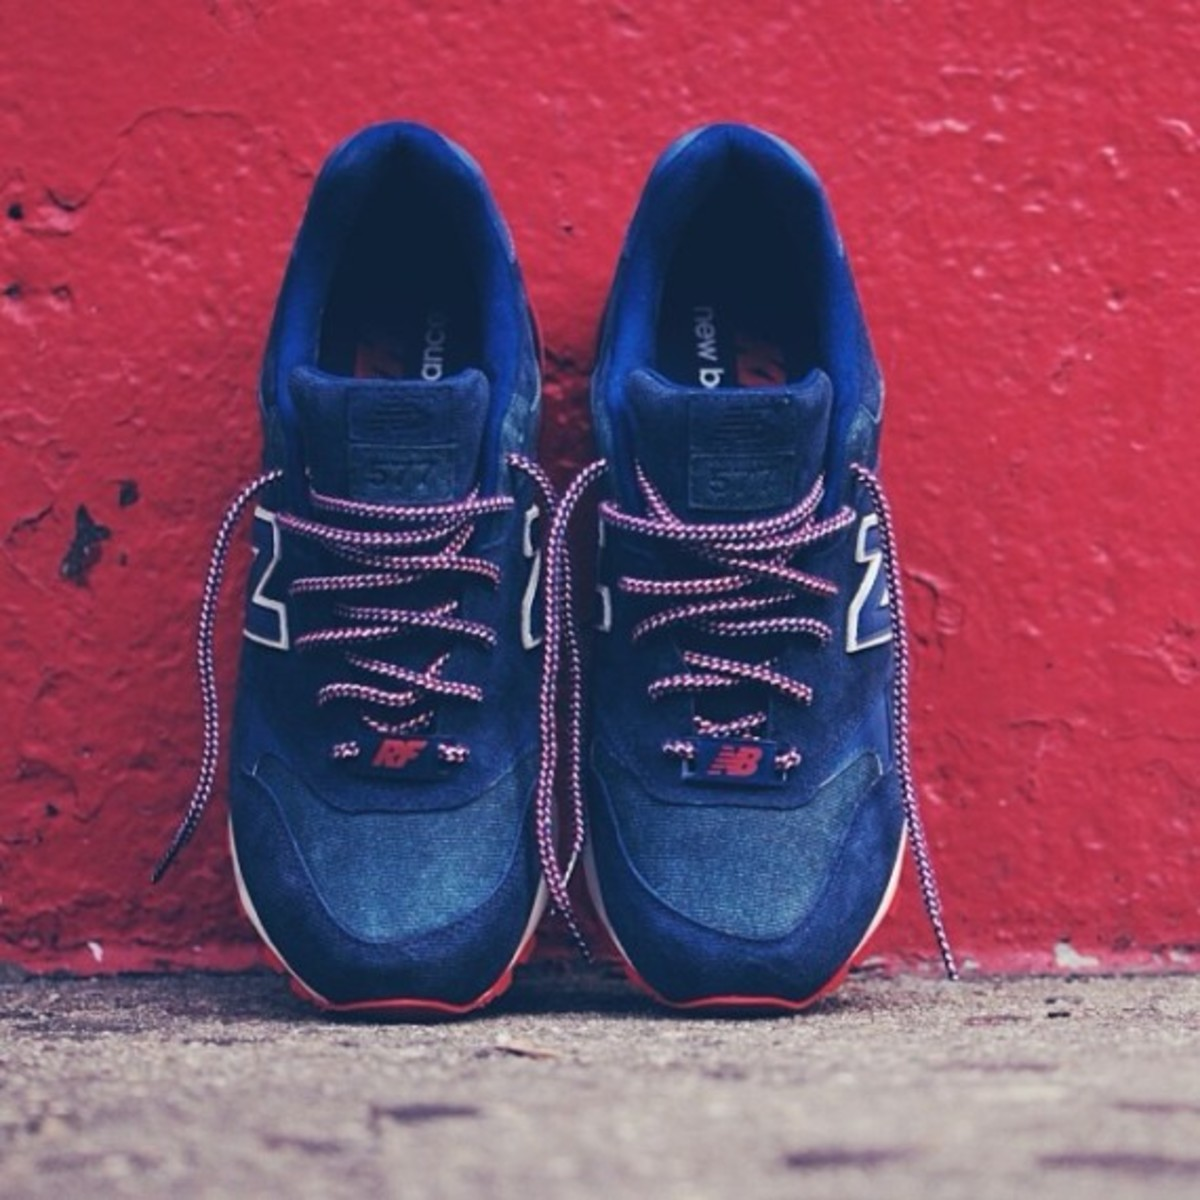 ronnie-feig-new-balance-577-americana-cyber-monday-release-03